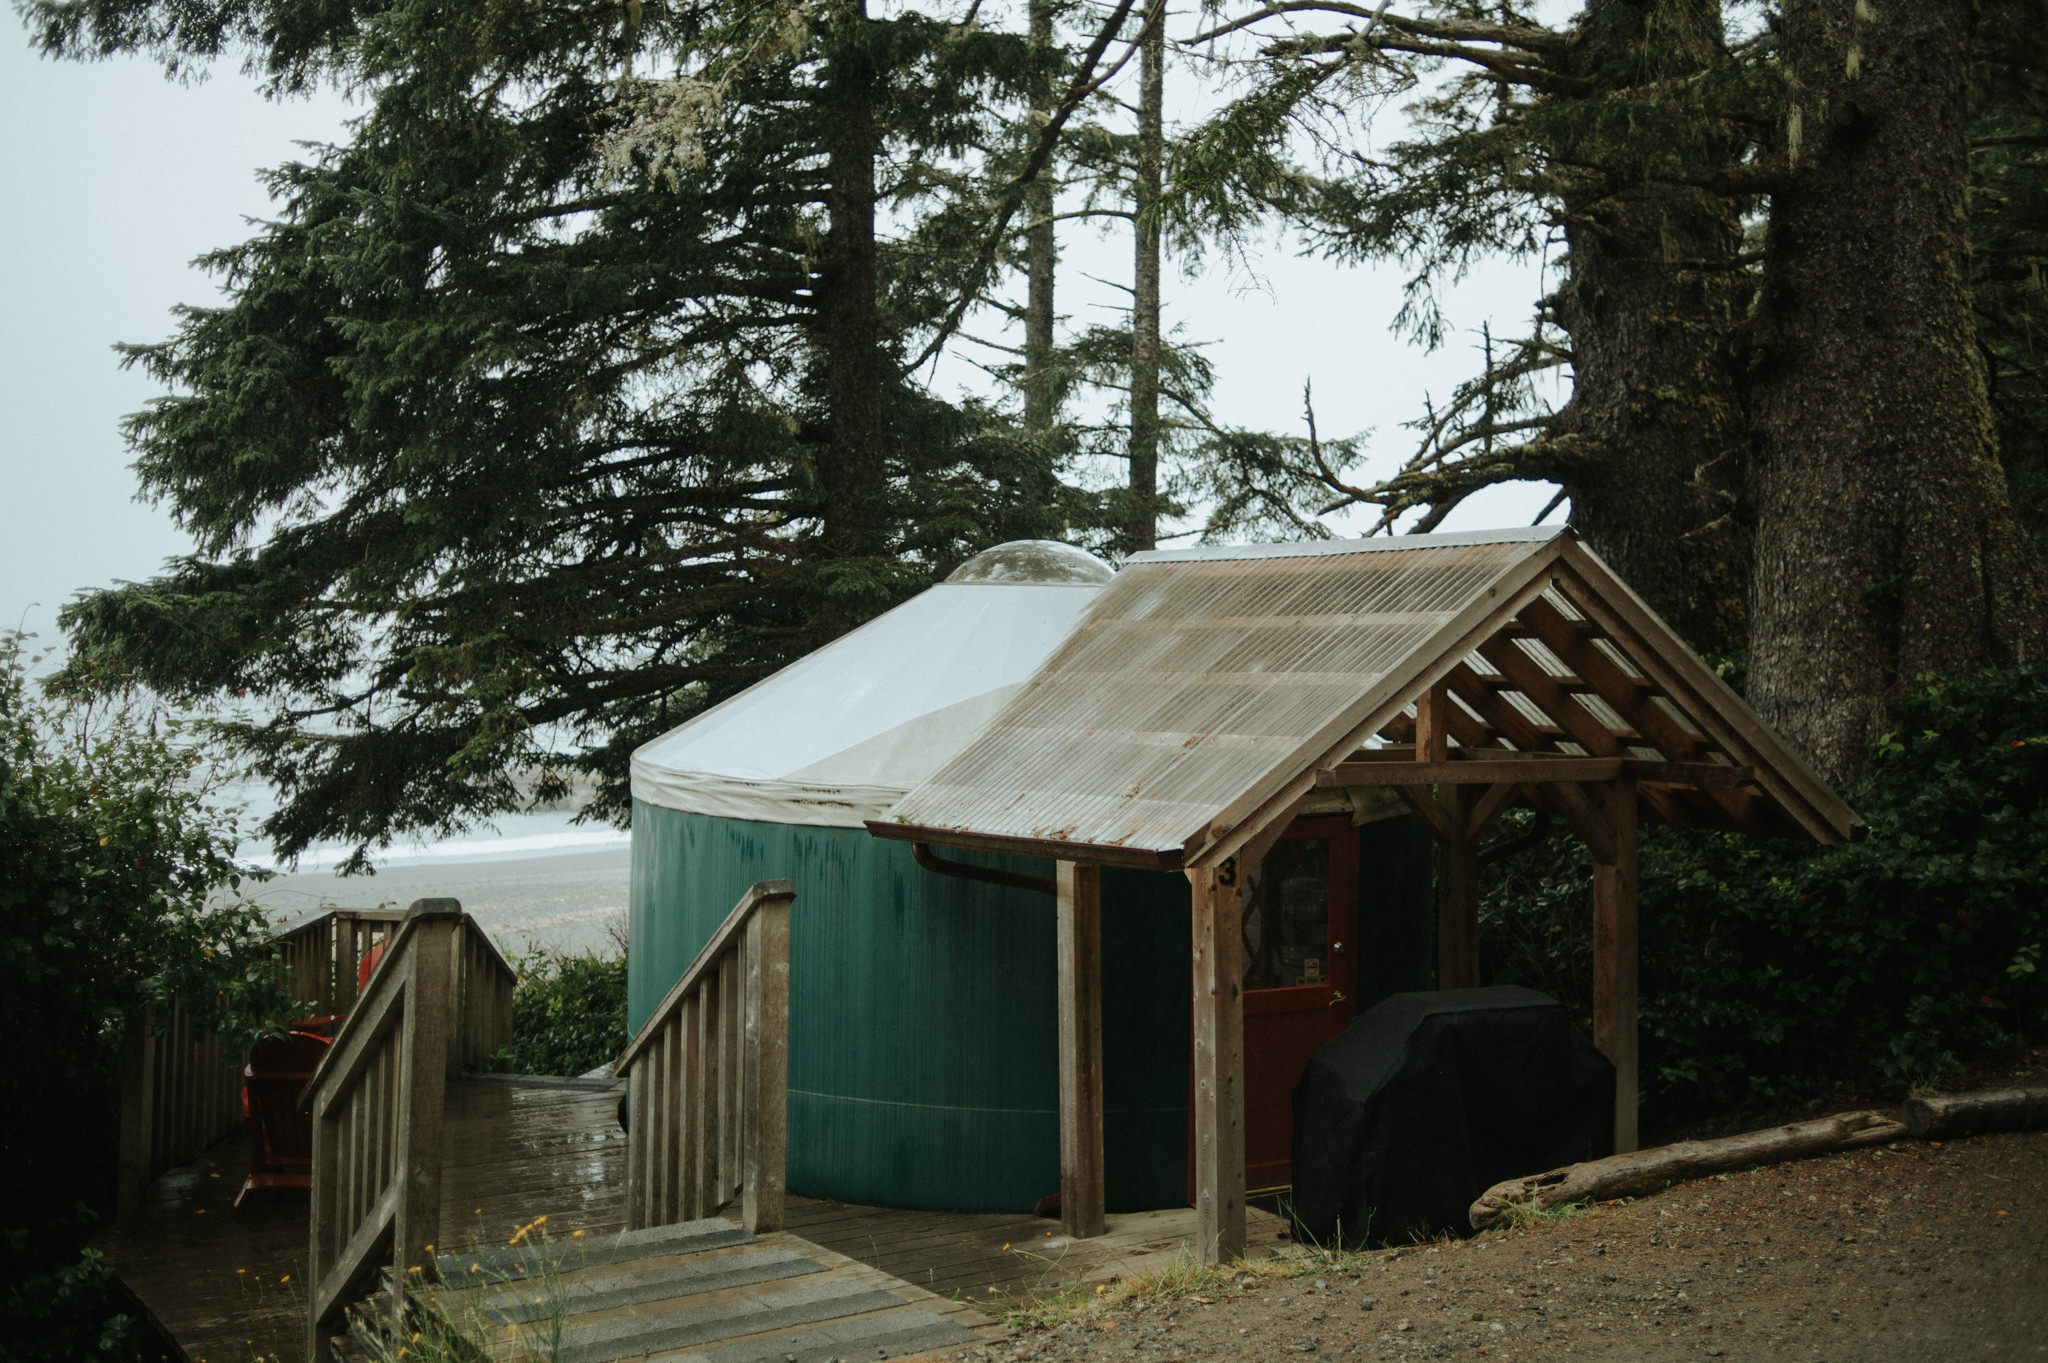 Camping in a yurt at Wya Point Resort in Ucluelet, BC // Daring Wanderer: www.daringwanderer.com